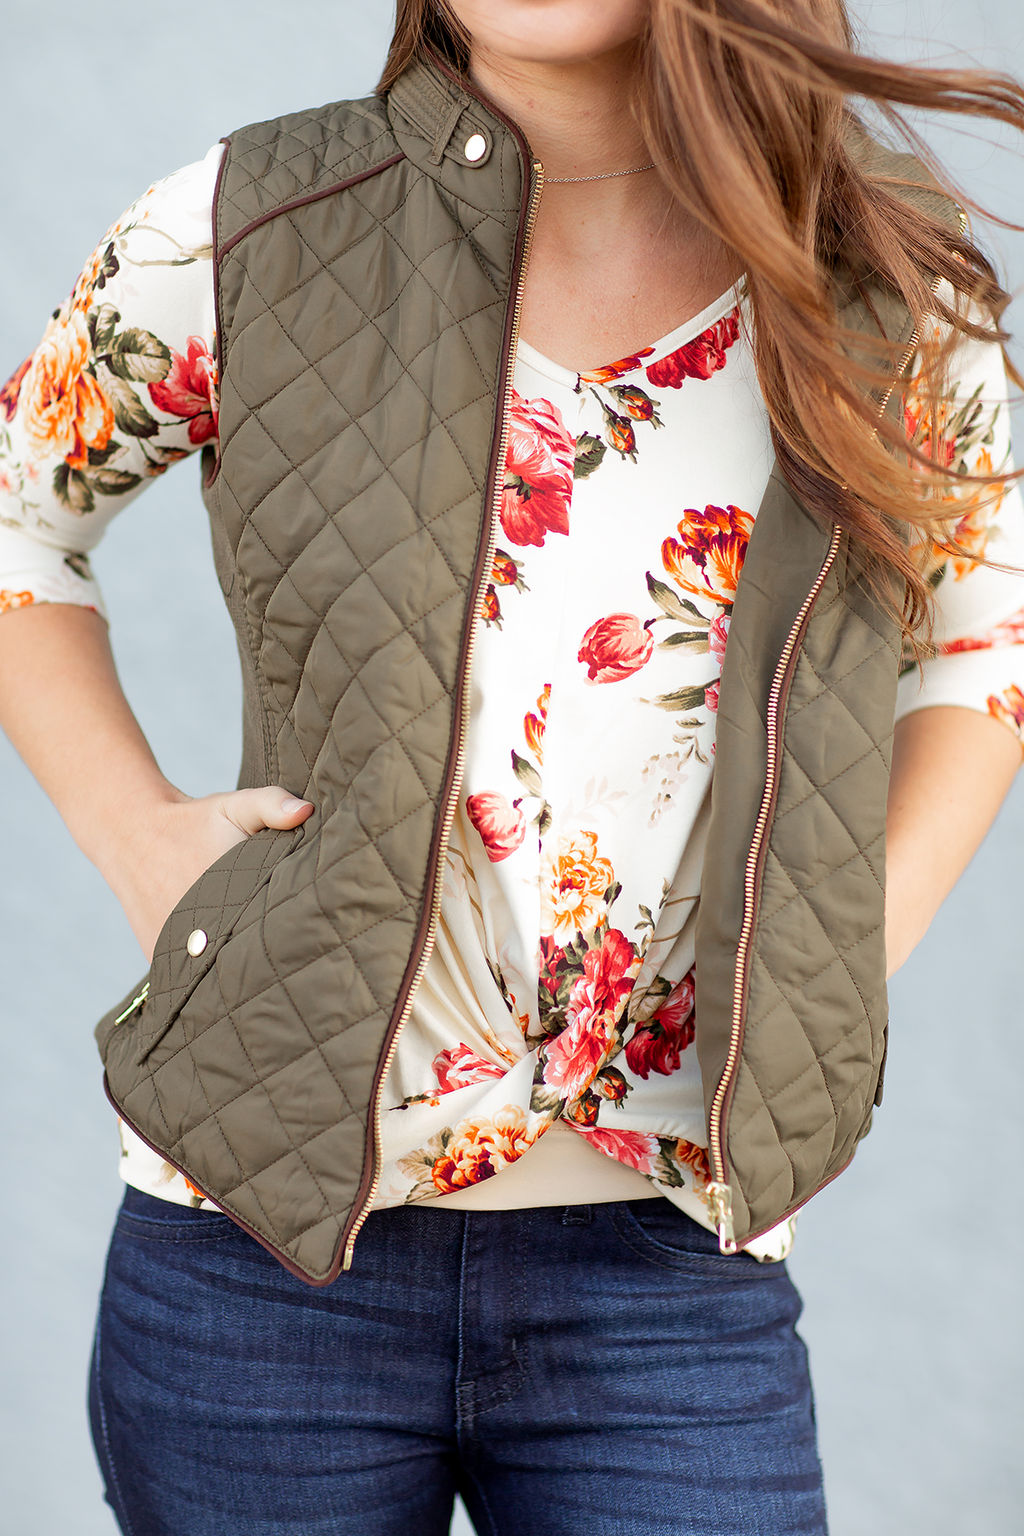 Sincerely Yours Vest in Olive